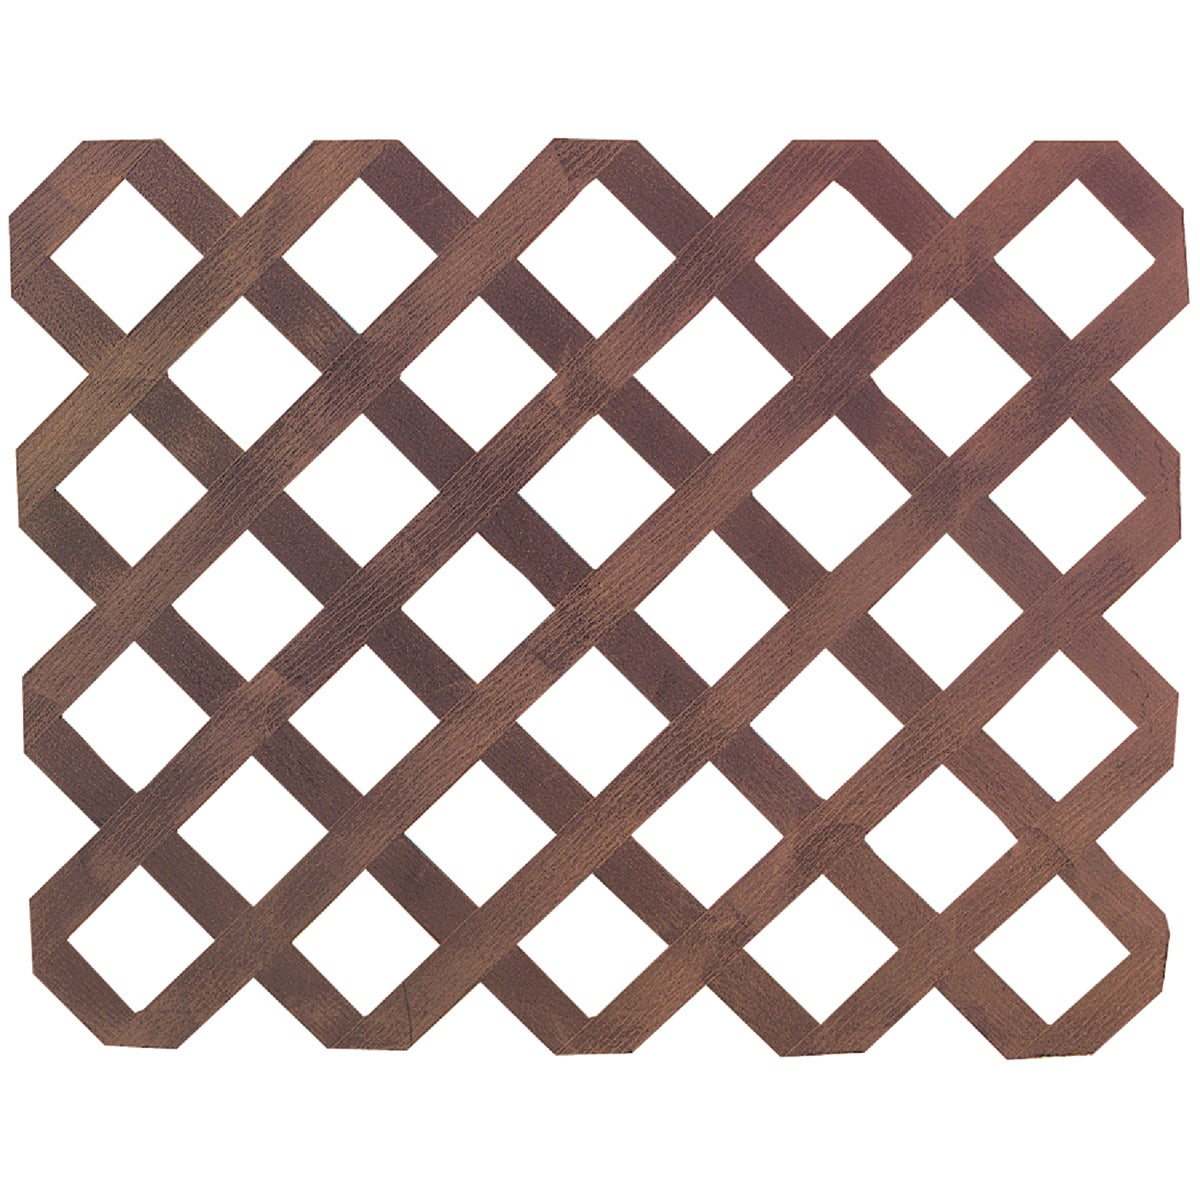 4X8 HD CEDAR LATTICE